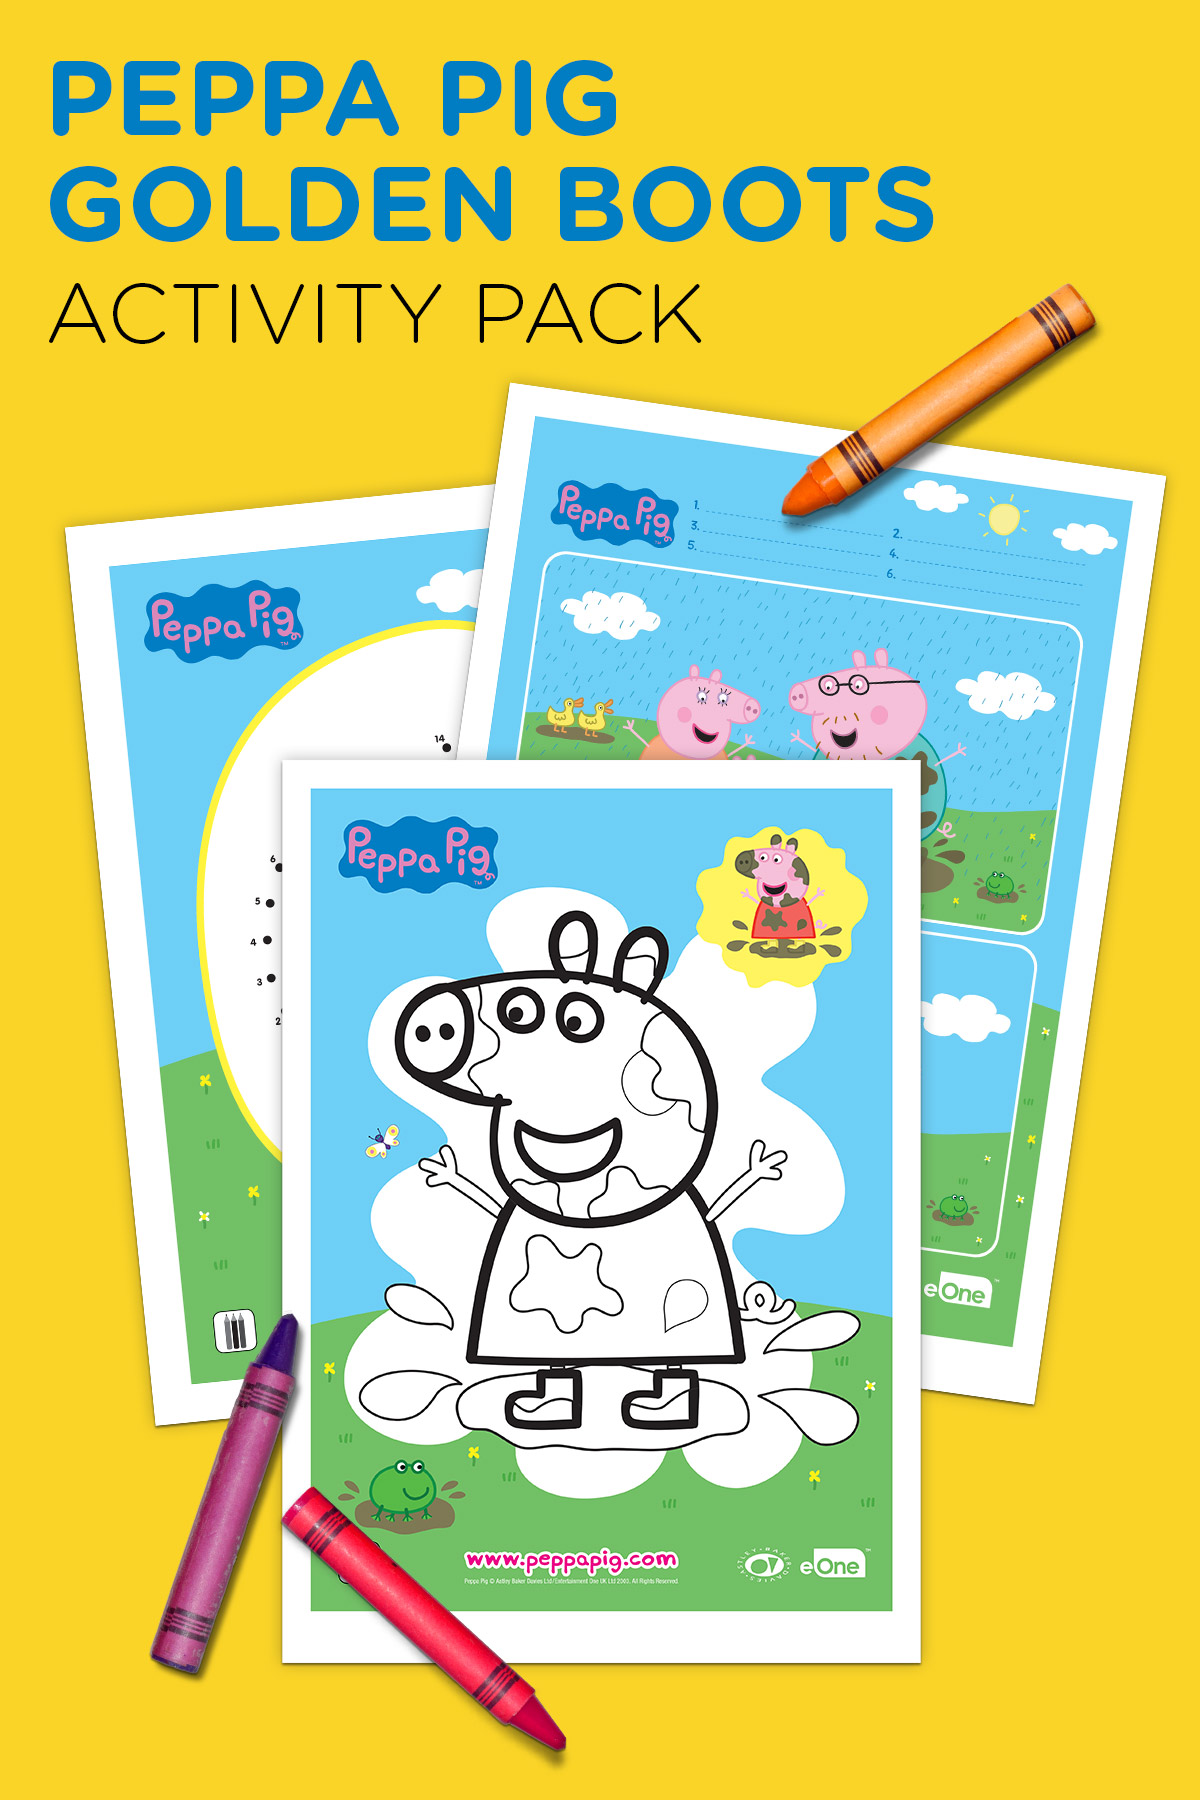 image relating to Peppa Pig Character Free Printable Images named Peppa Pig Golden Boots Recreation Pack Nickelodeon Mothers and fathers